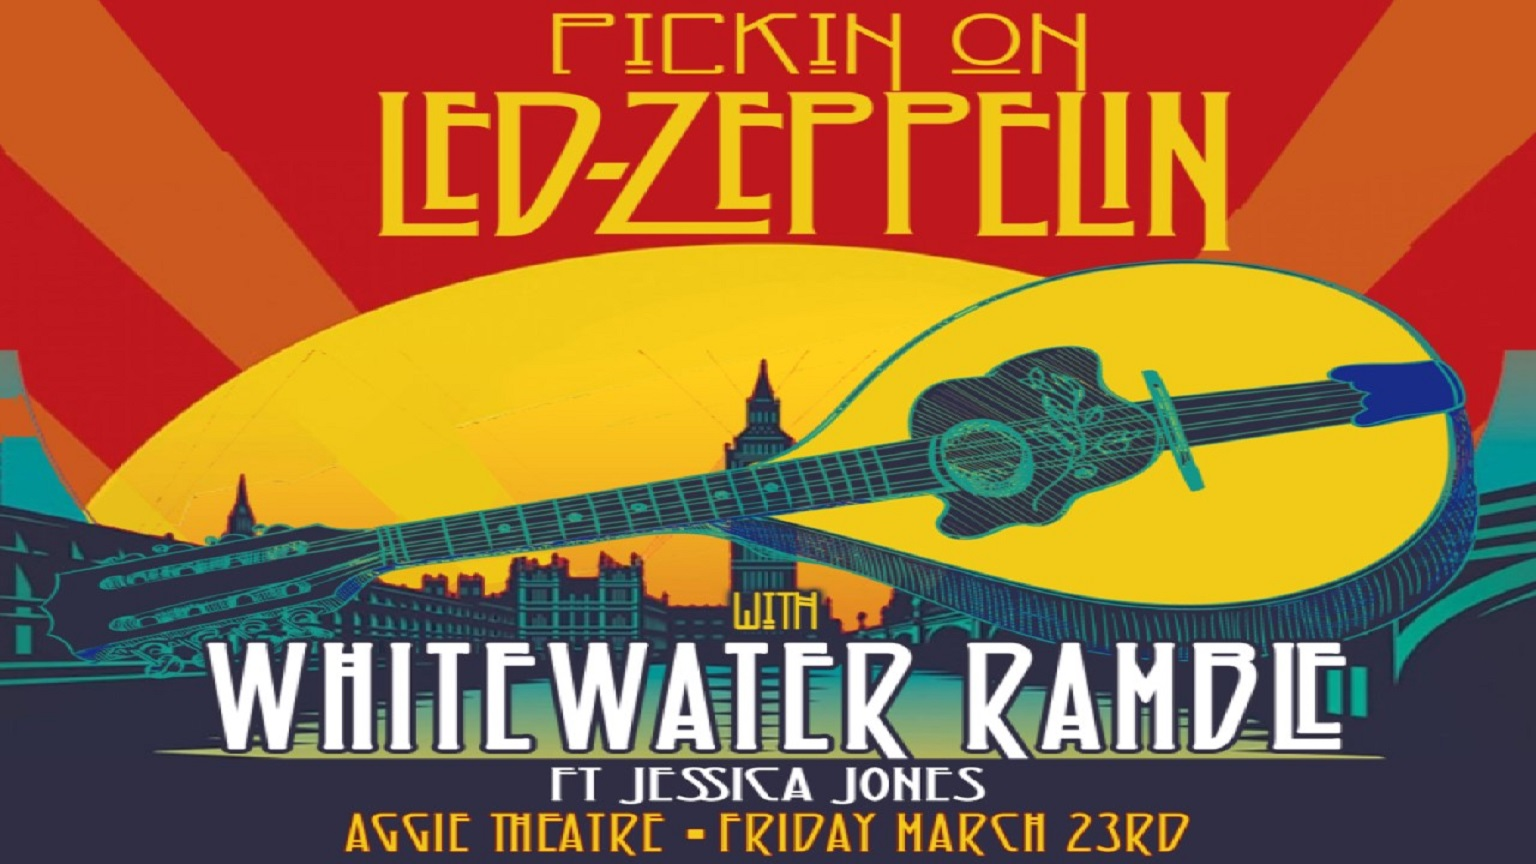 WhiteWater Ramble will release its live 15-track Led Zeppelin cover show